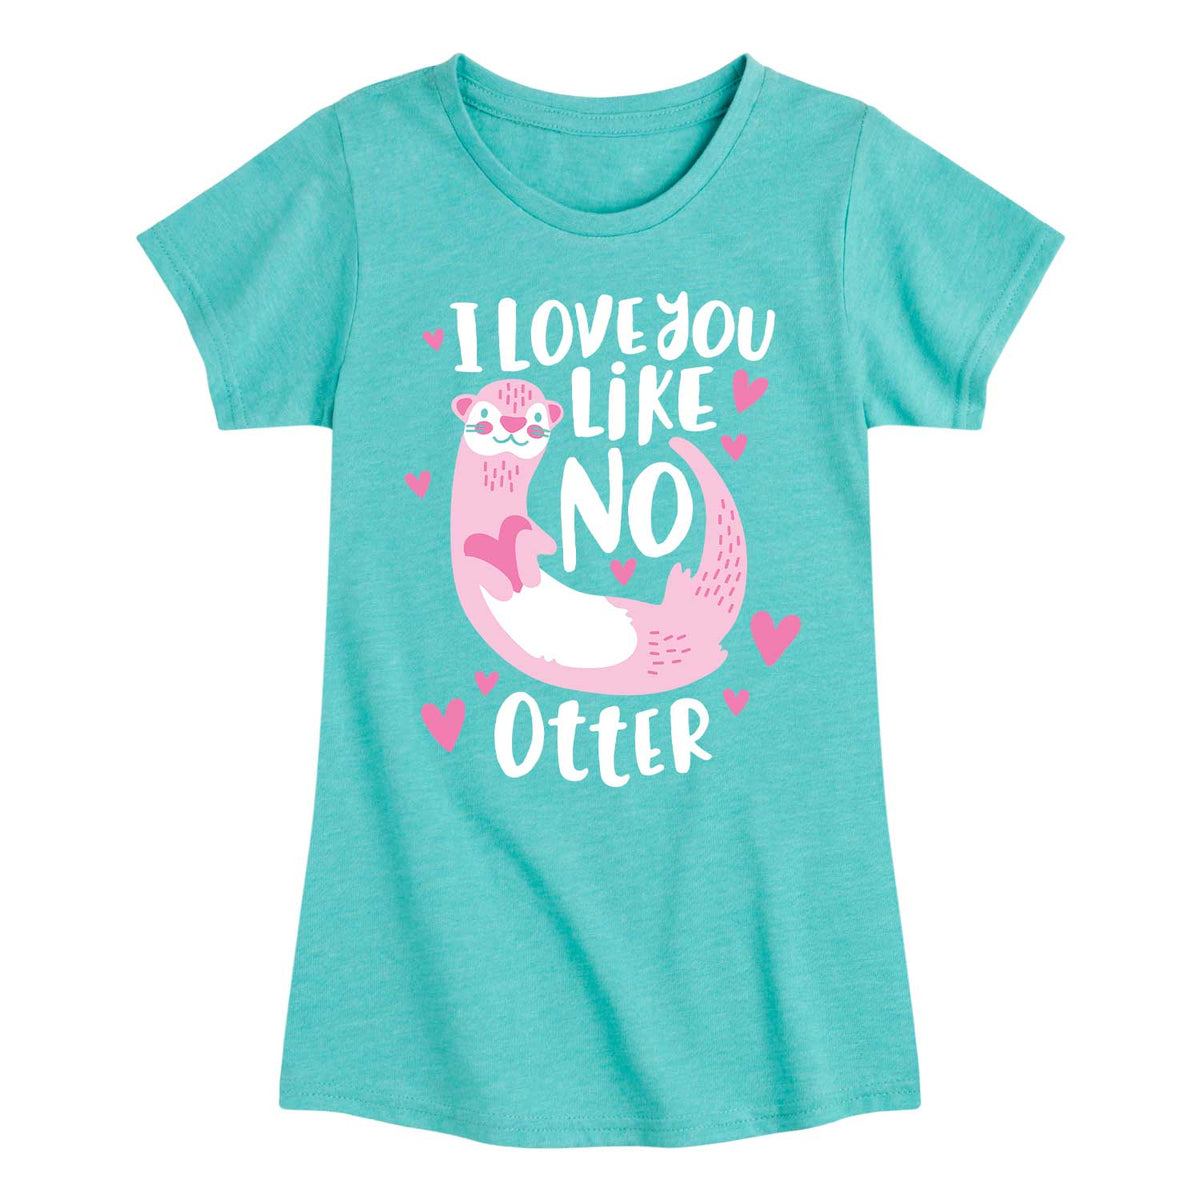 Like No Otter - Youth & Toddler Girls Short Sleeve T-Shirt